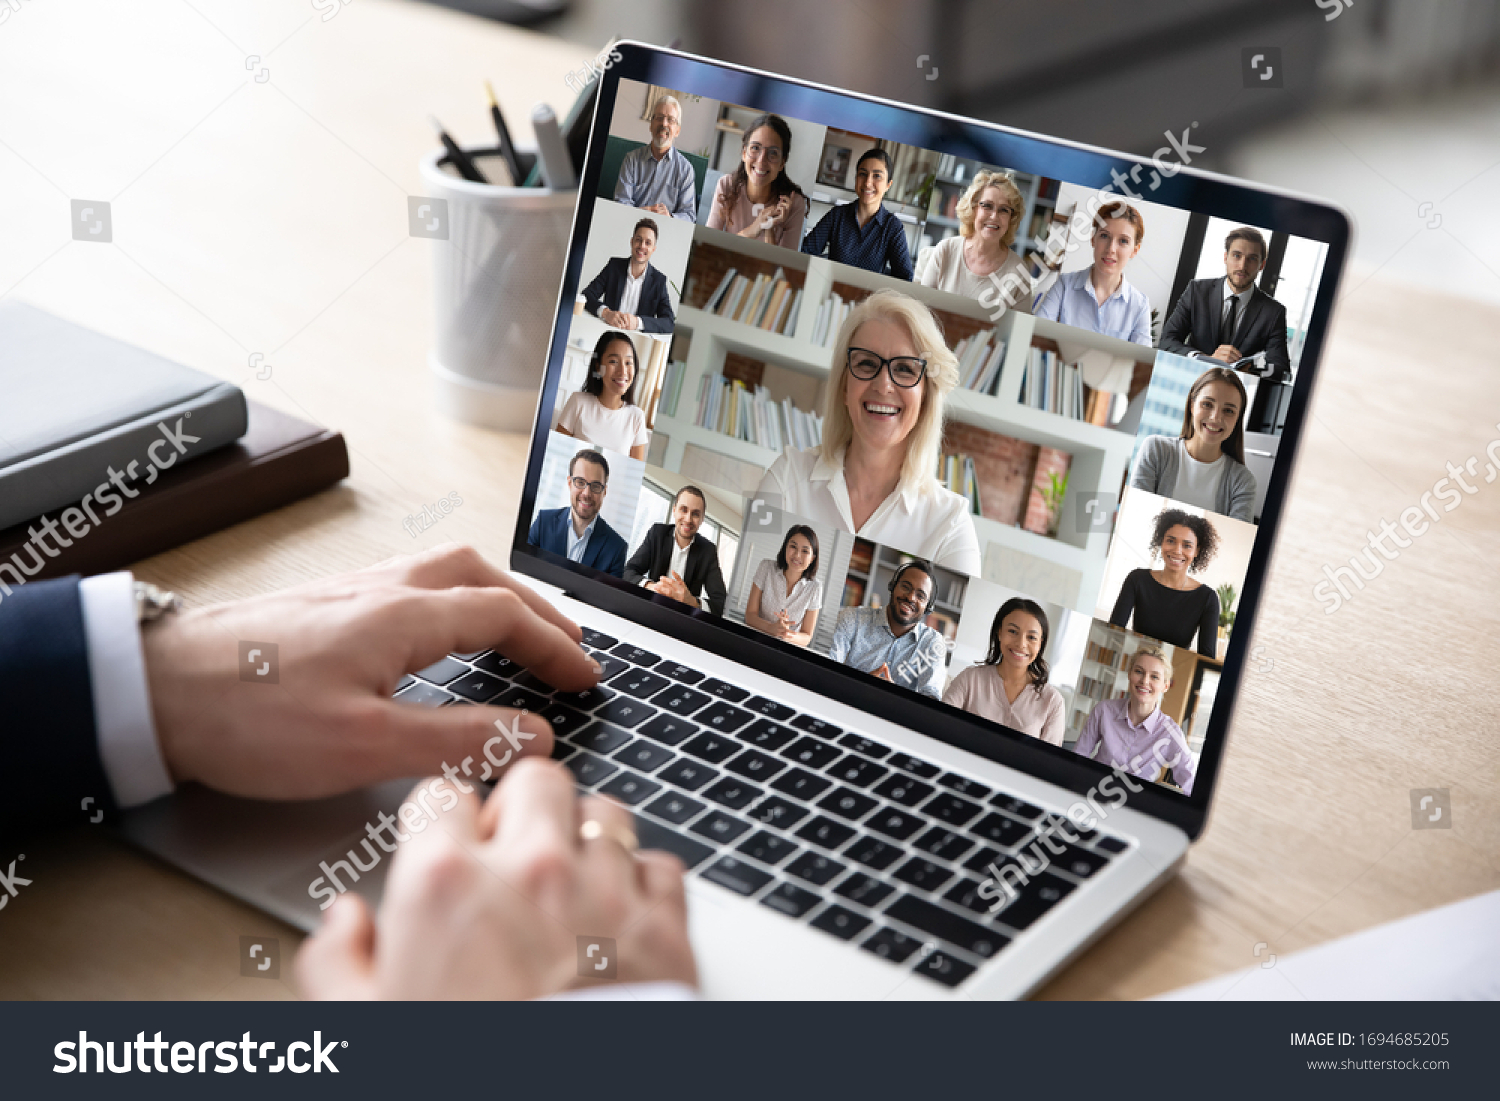 Businessman sit at desk use computer working on-line communicate distantly with colleagues by videoconferencing diverse people engaged in group video call, advertise worldwide virtual chat app concept #1694685205